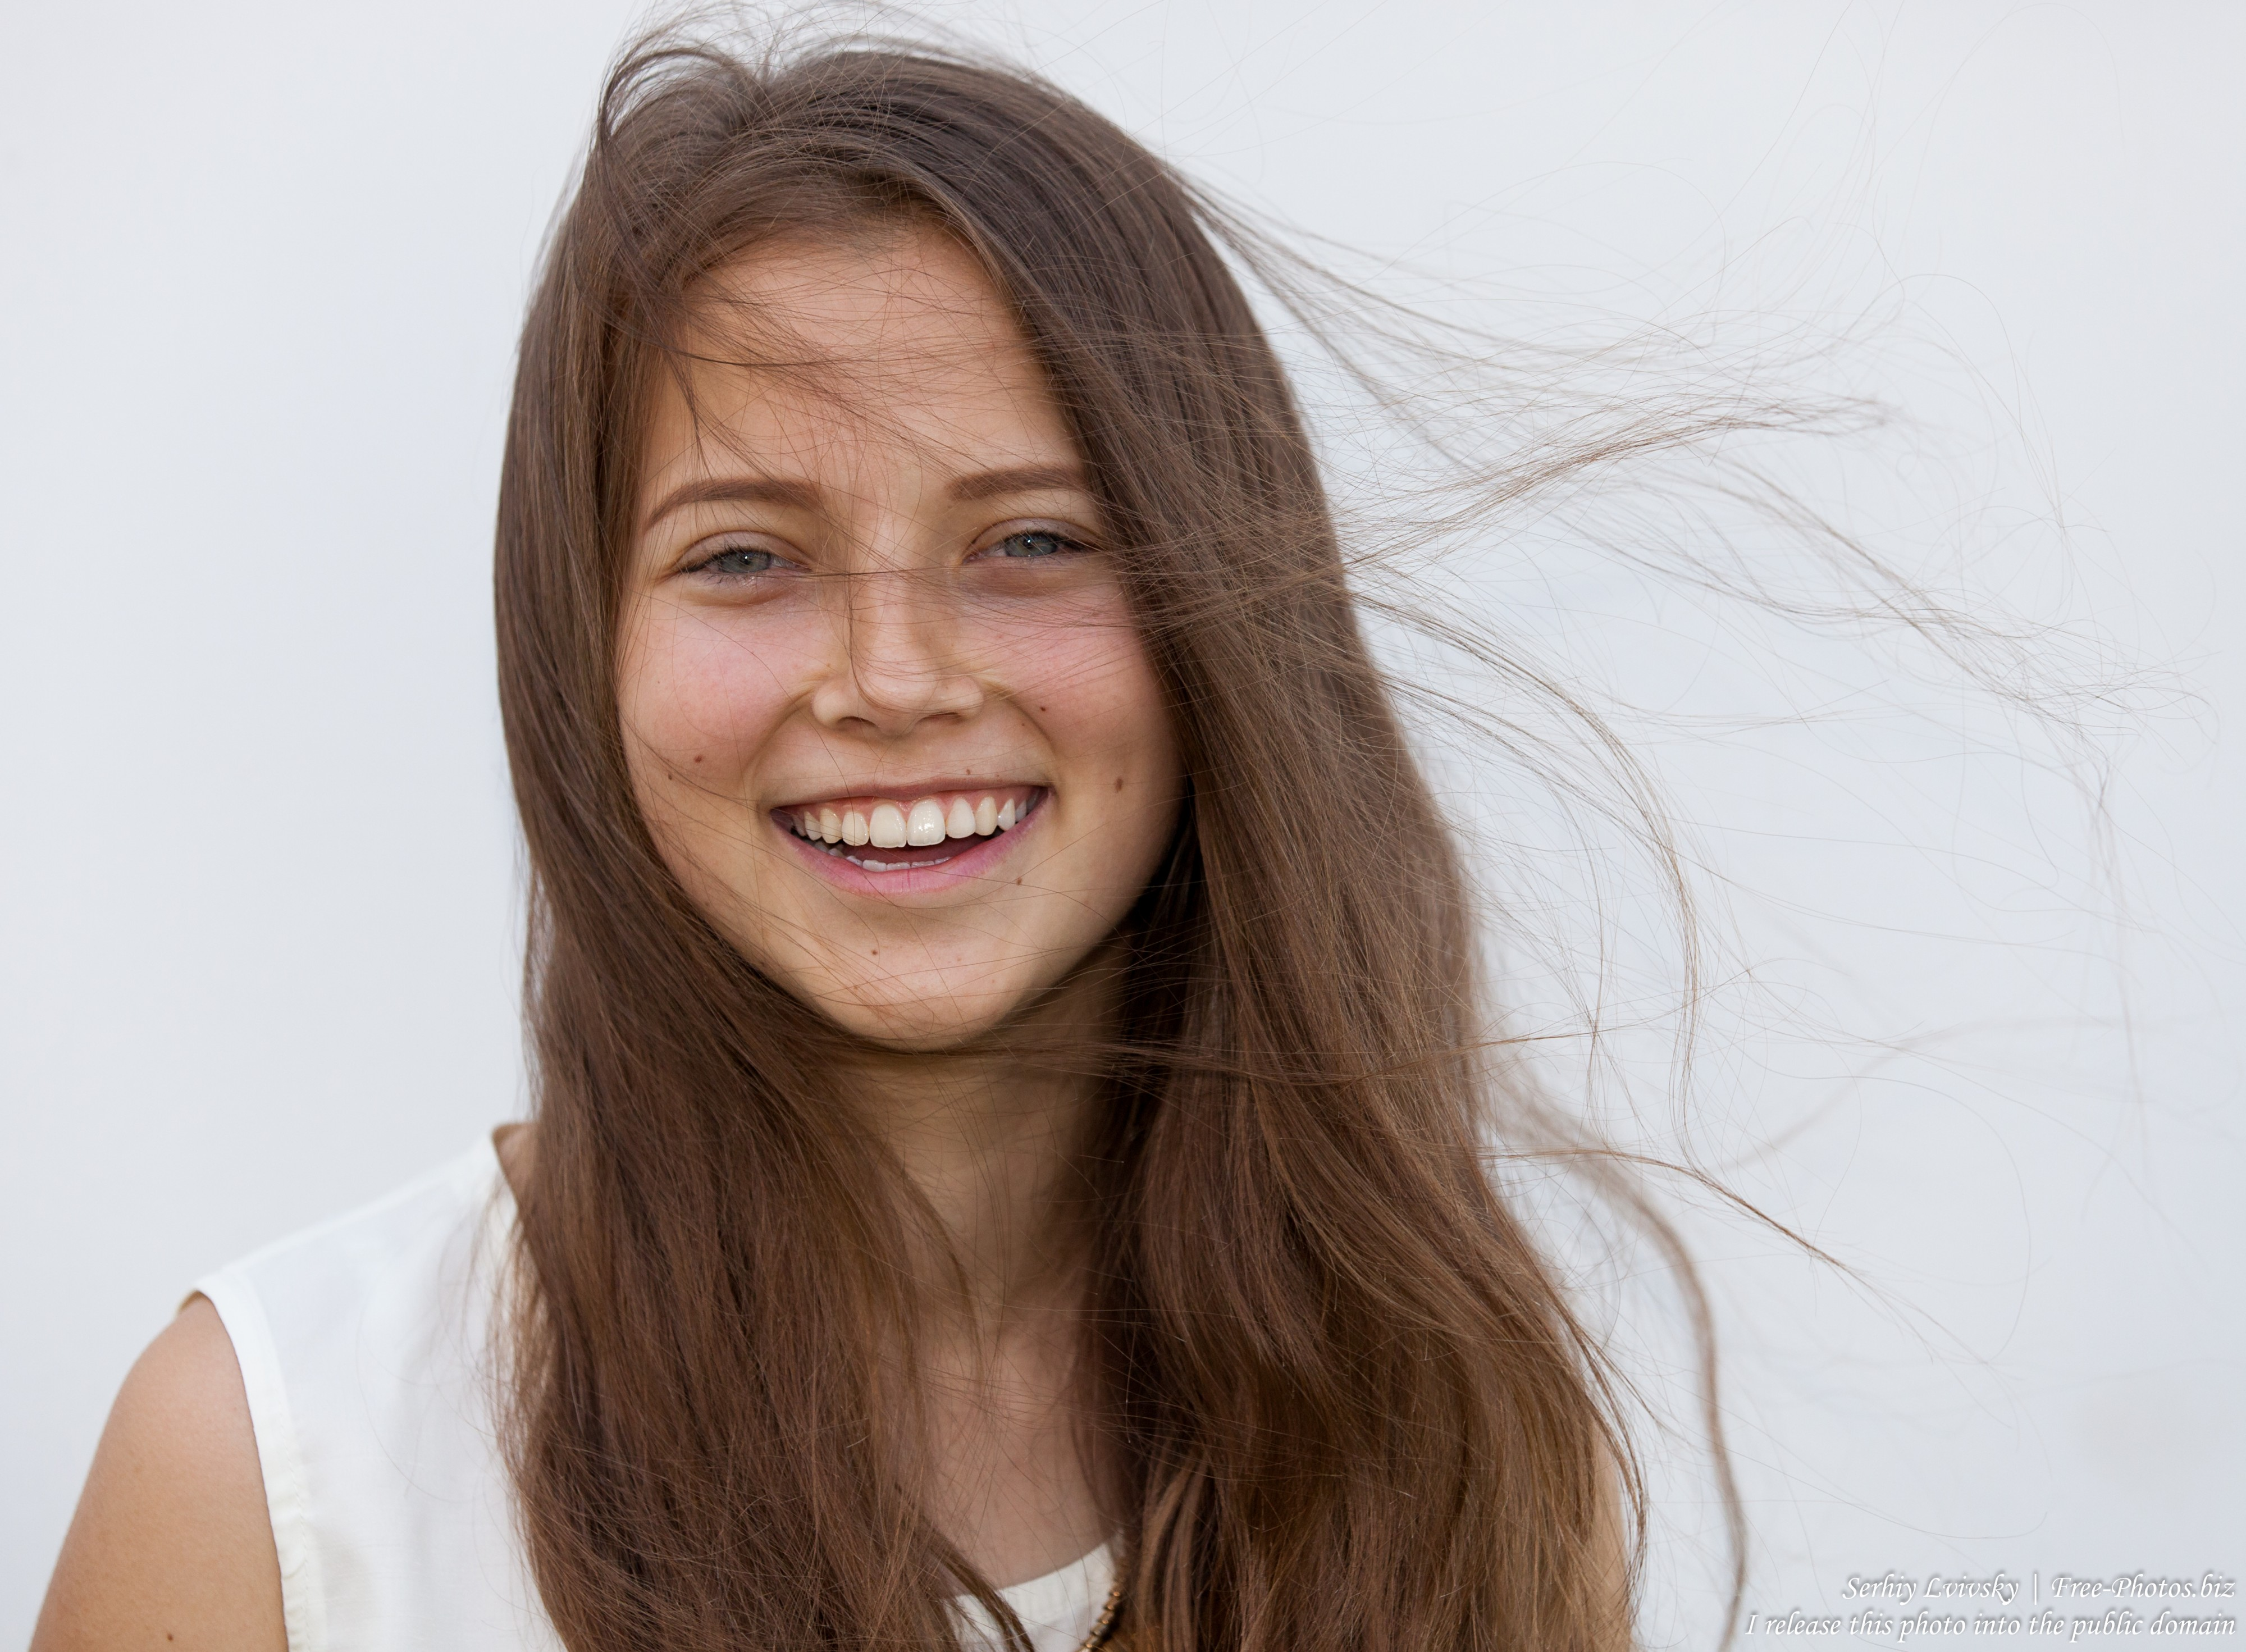 a cute 15-year old girl photographed in July 2015, picture 2